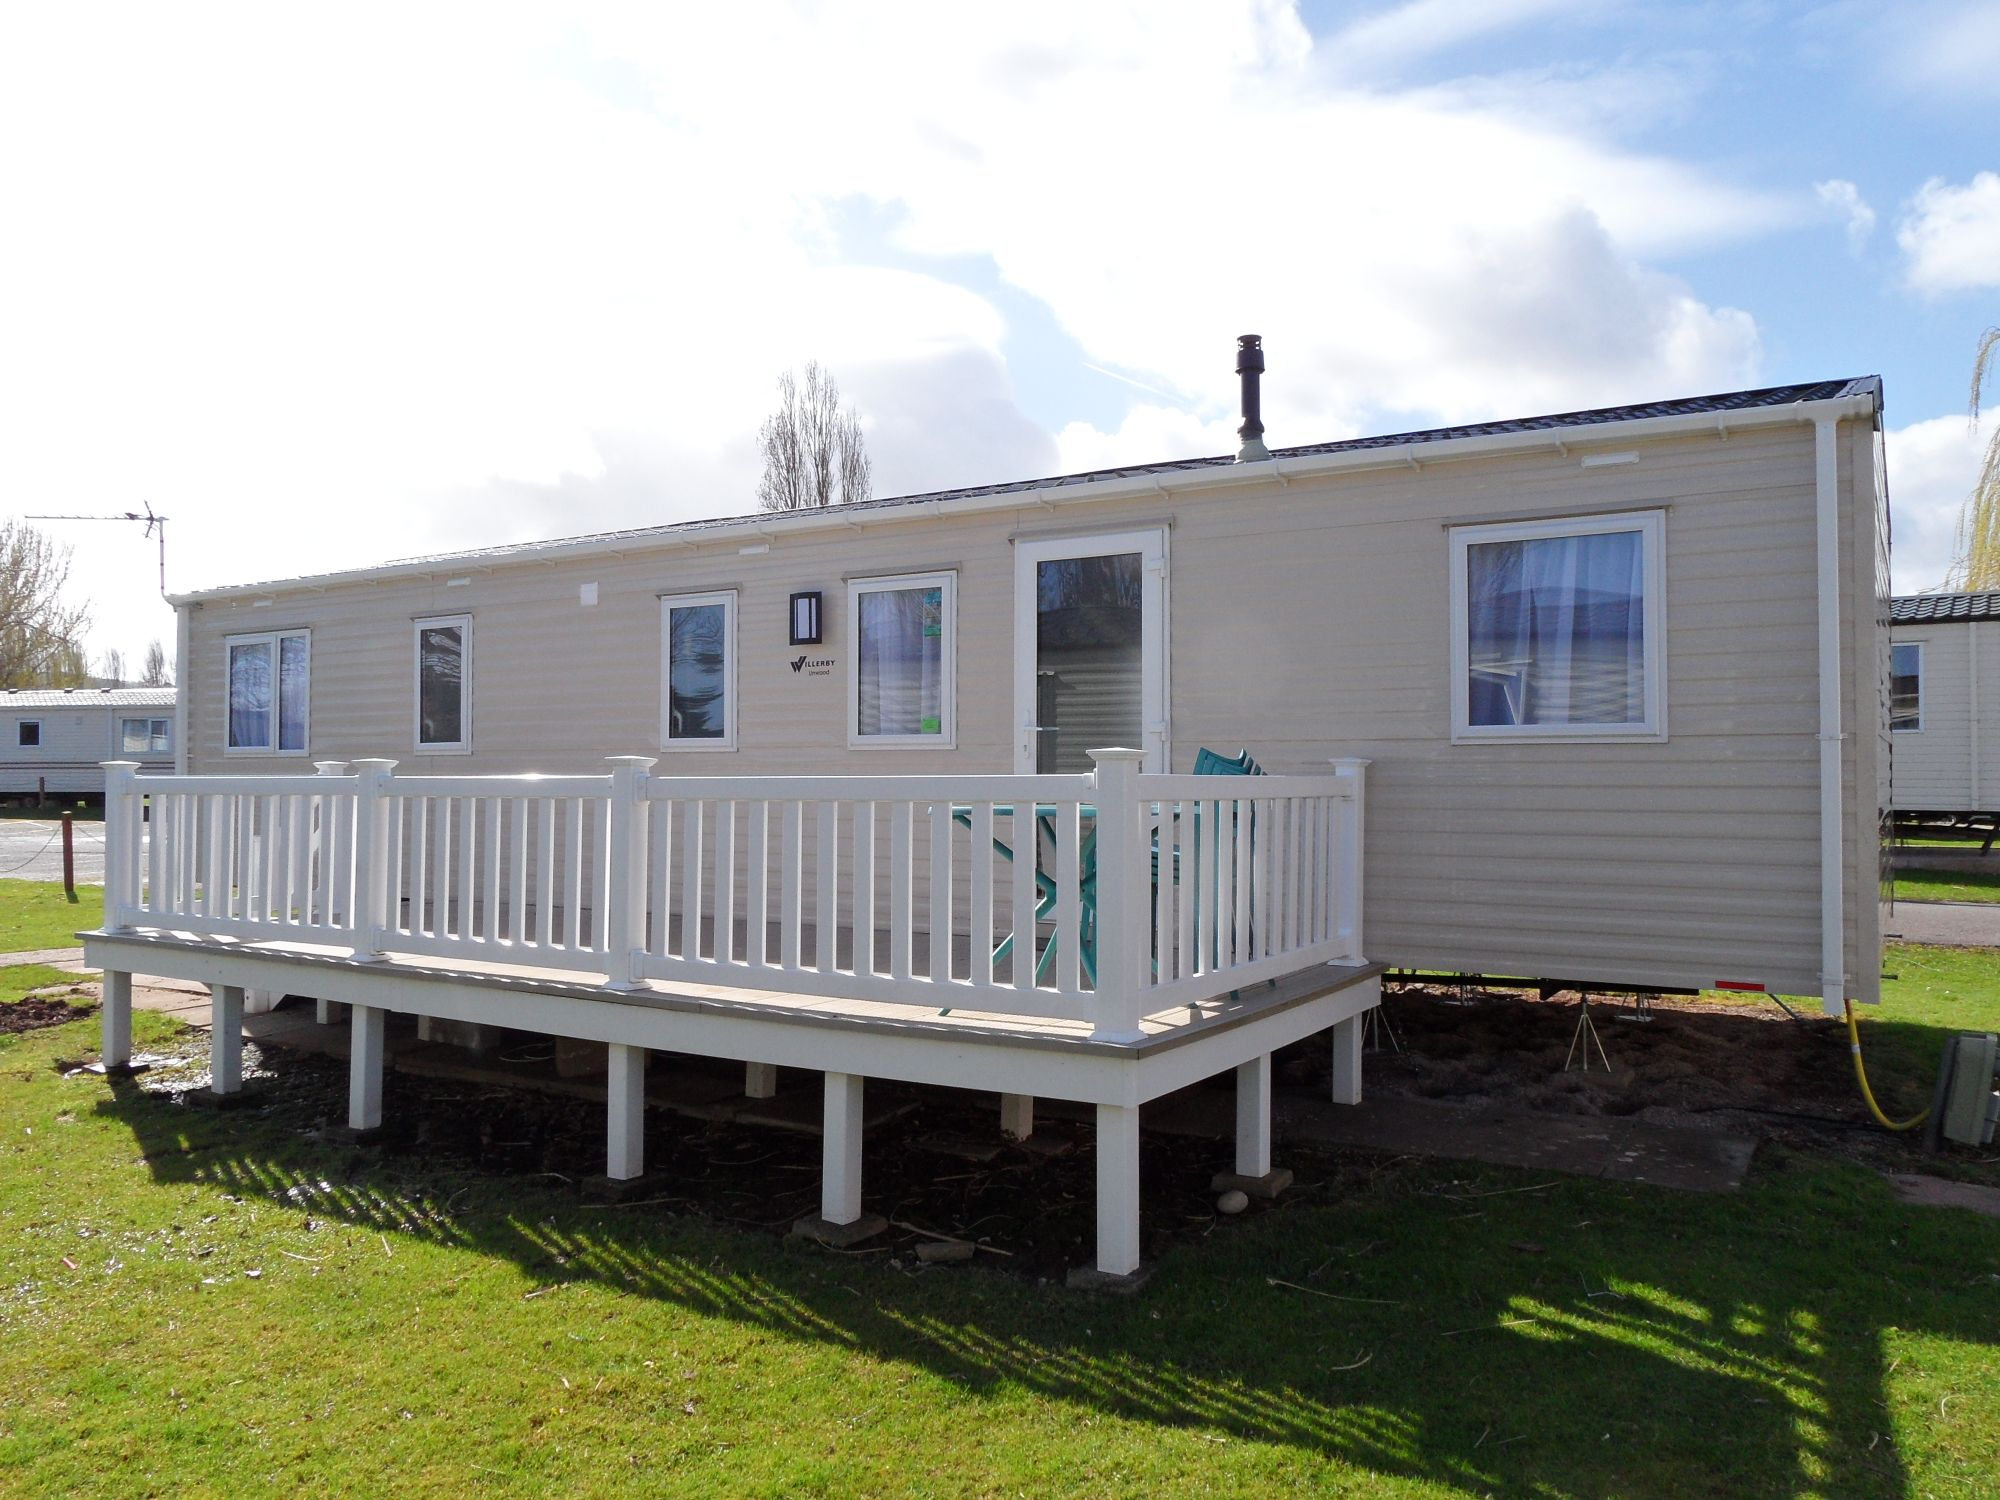 4 Bedroom 8 to 10 Berth Caravan Holidays in Minehead